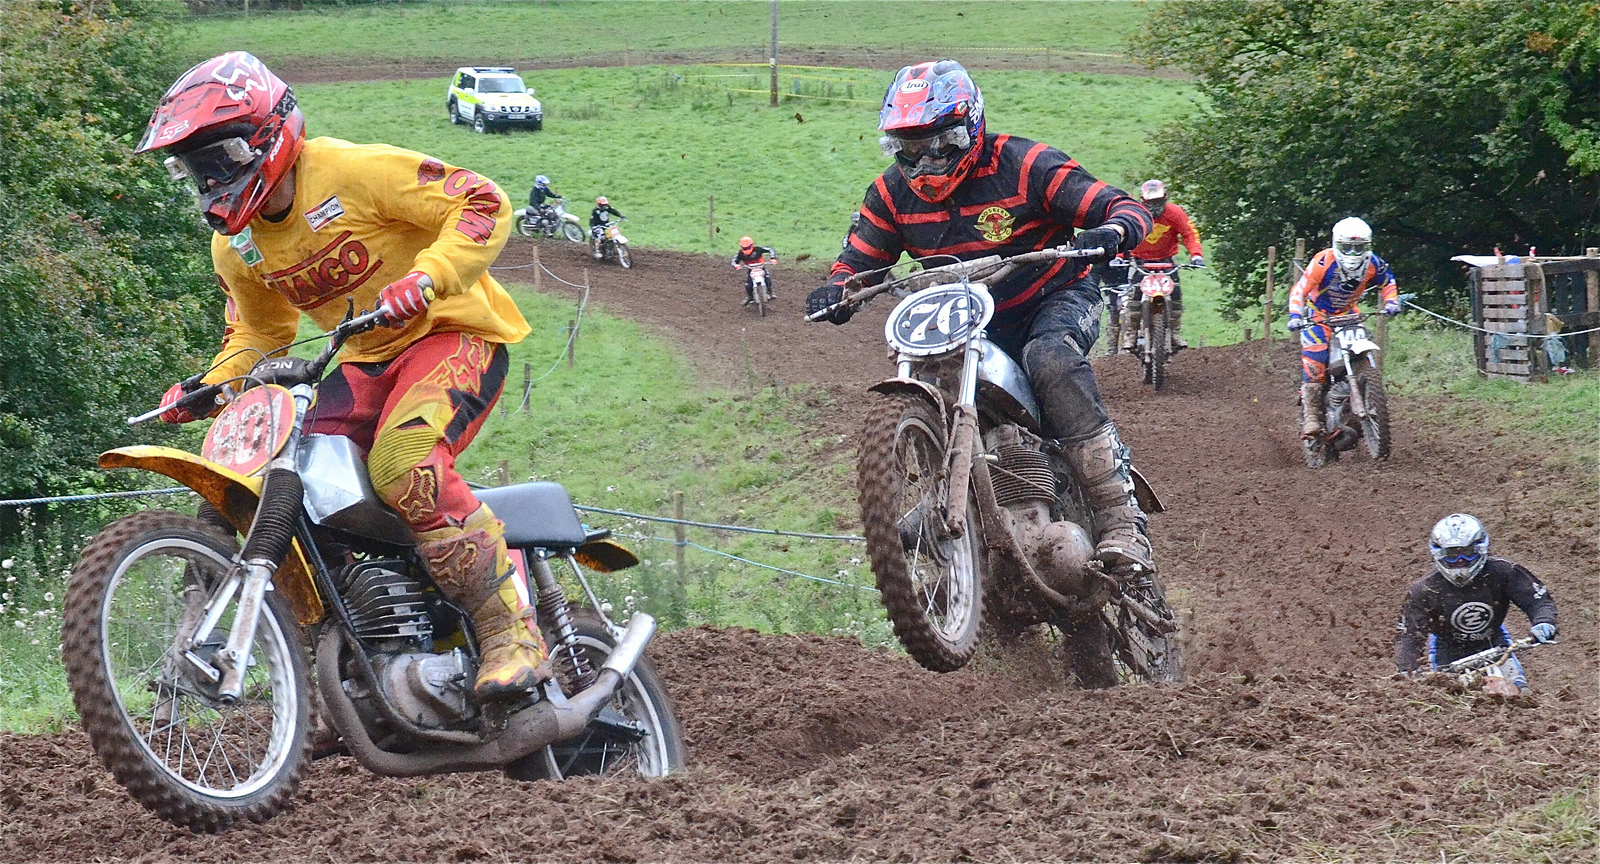 Llanthony Classic Scramble Photos September 2015 classicdirtbikerider.com..45